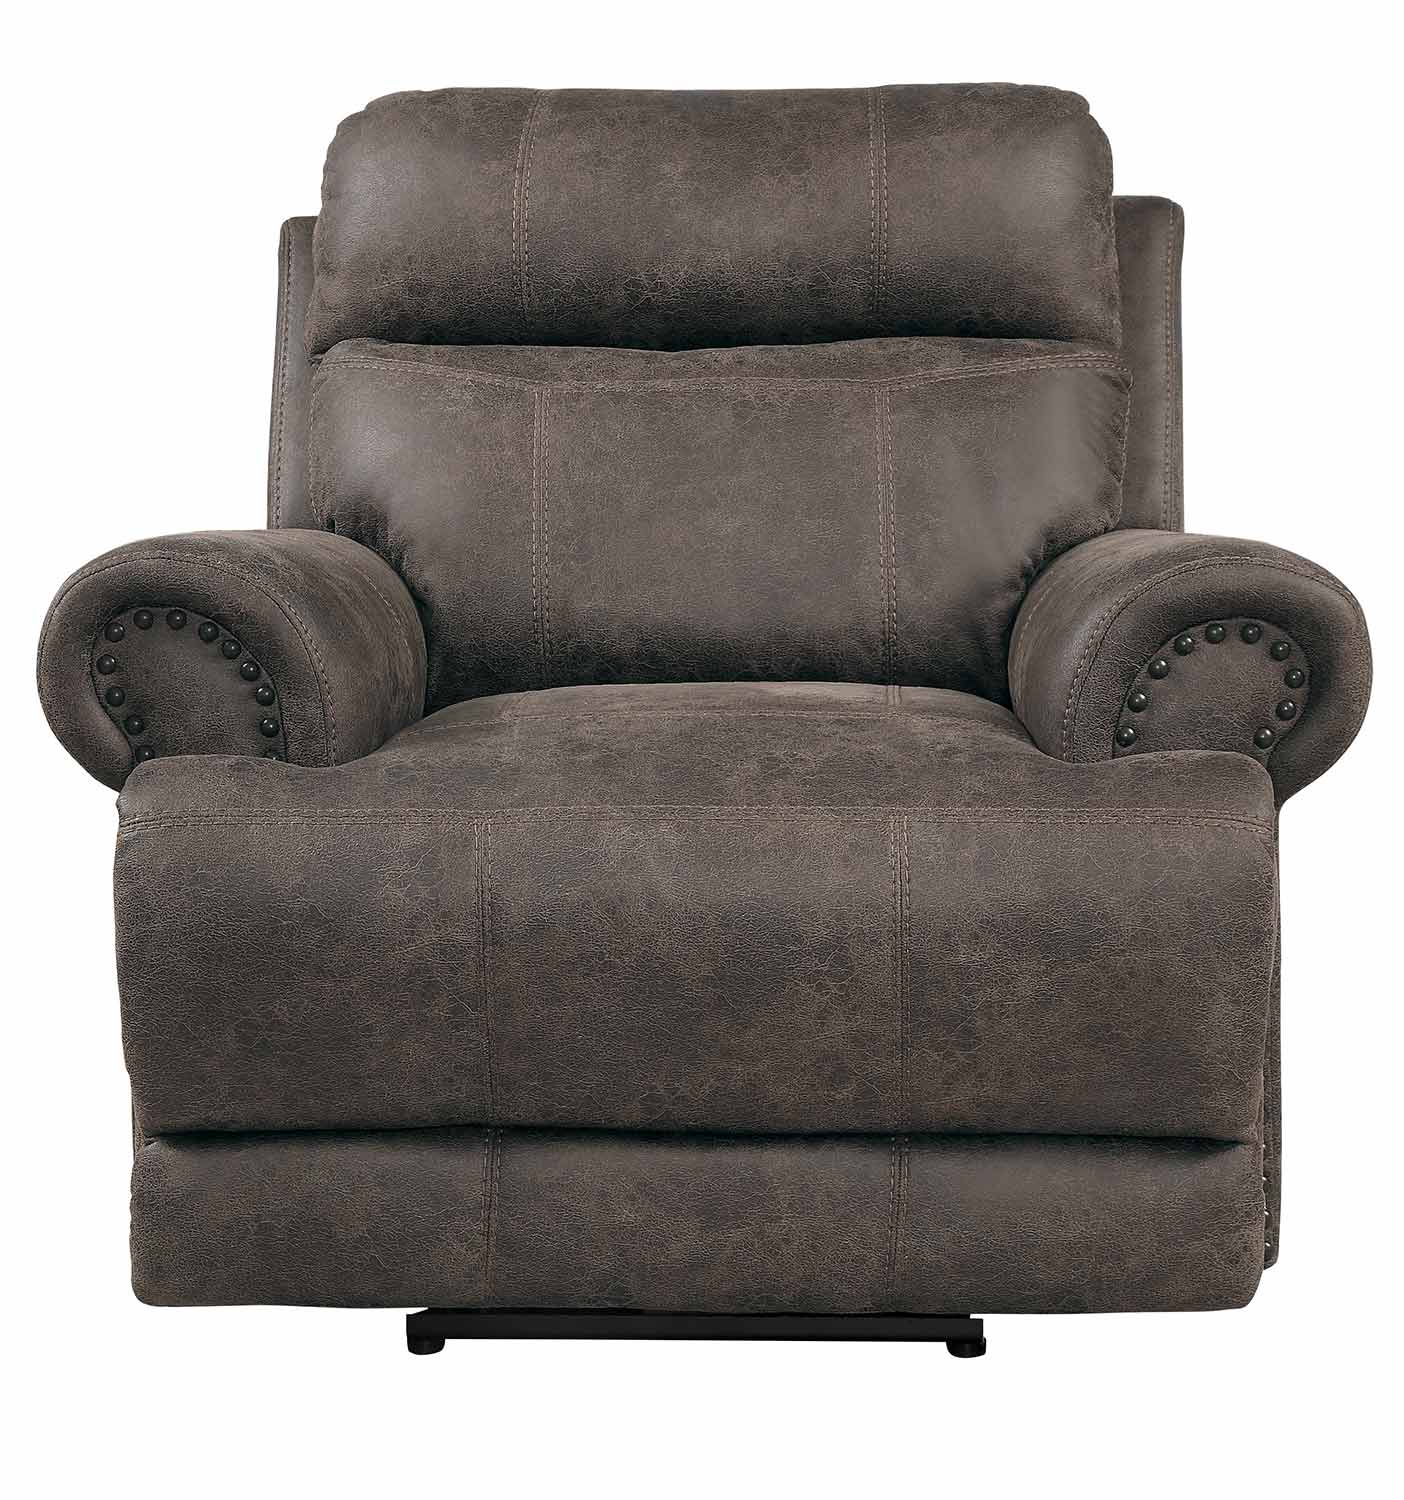 Homelegance Aggiano Glider Reclining Chair - Dark Brown